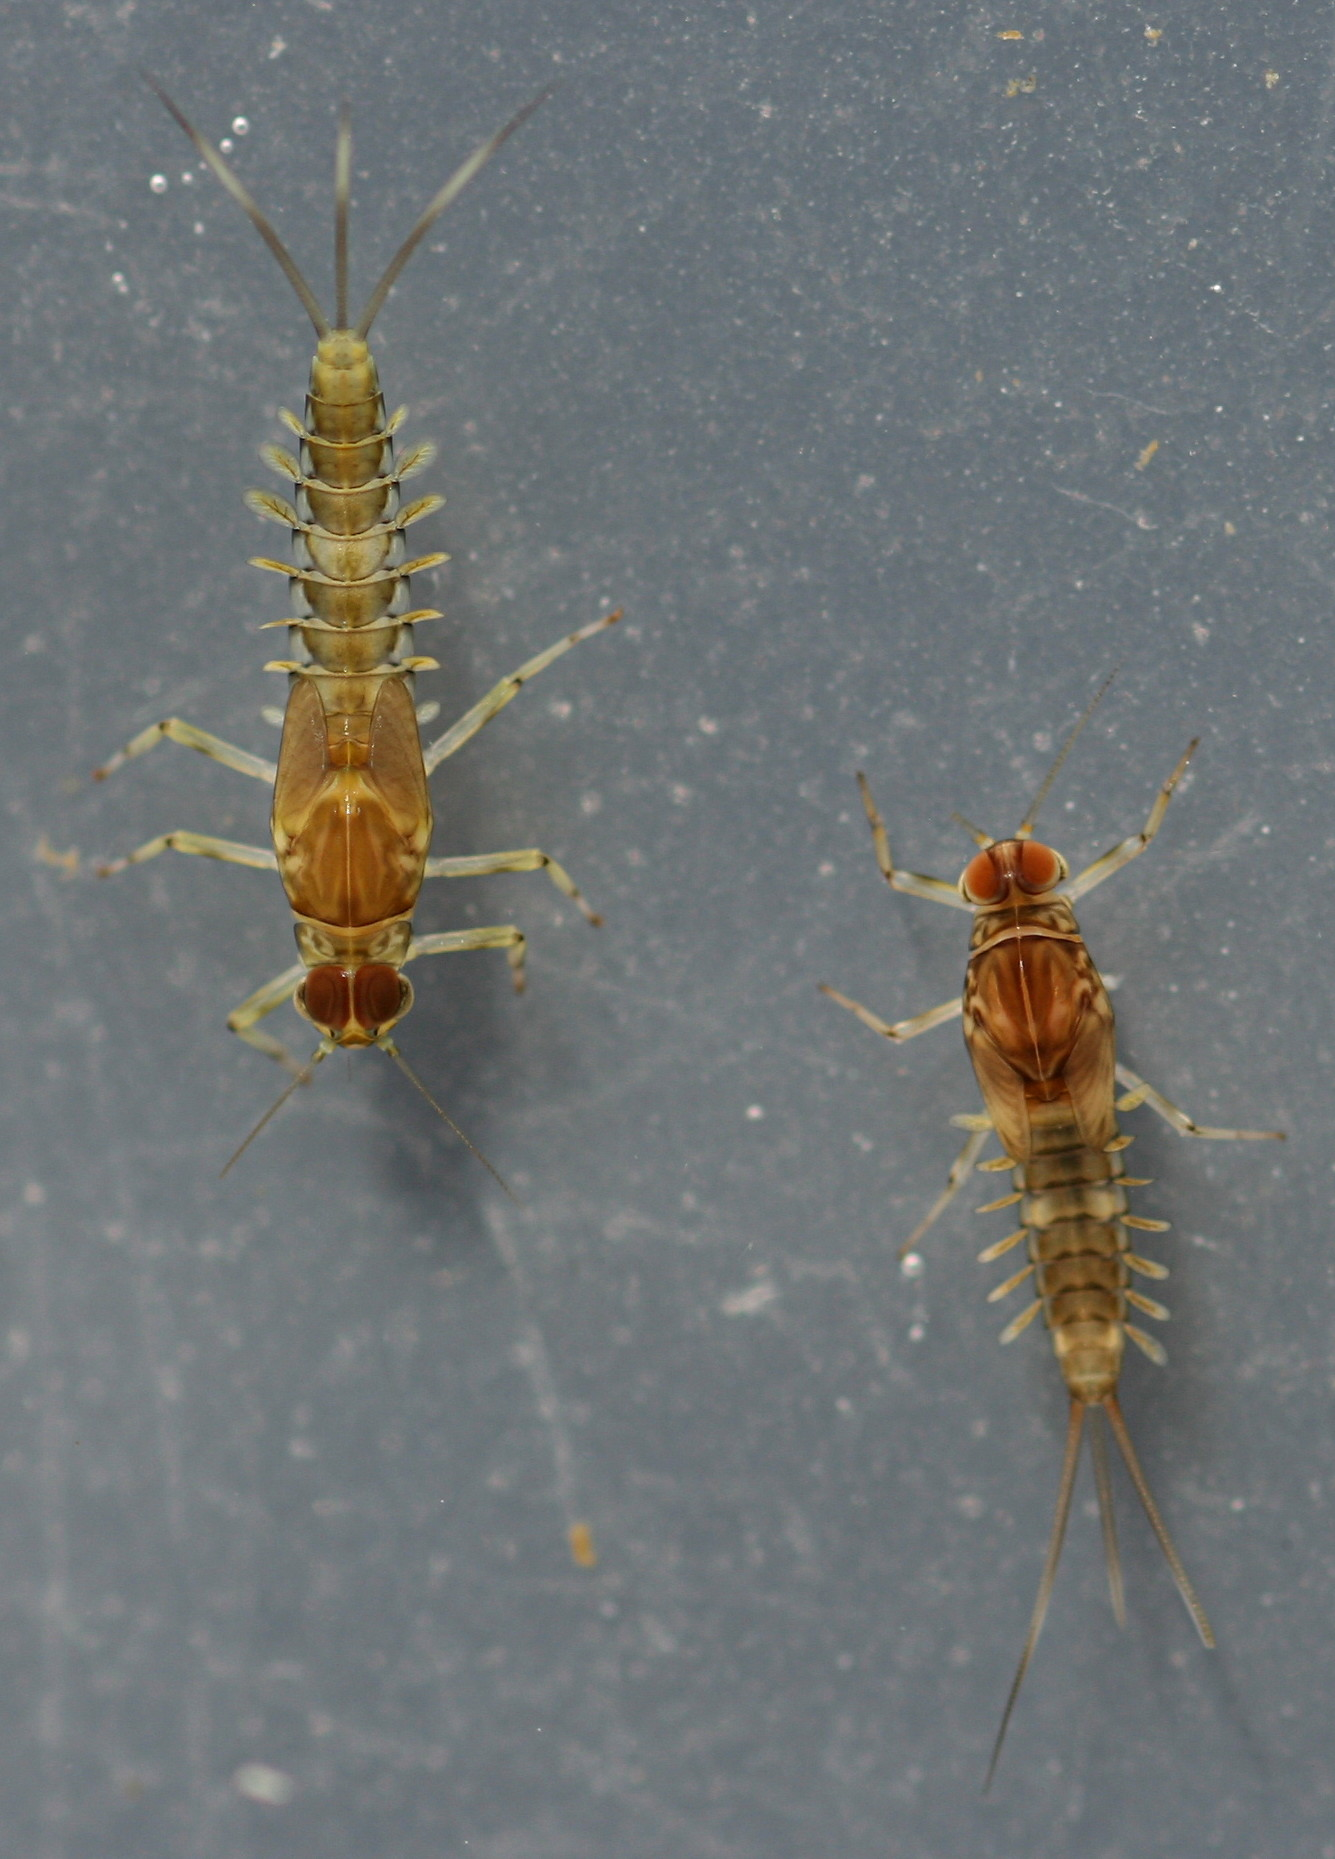 Fallceon sp.1. and Fallceon quilleri male nymphs. Collected November 1, 2014.